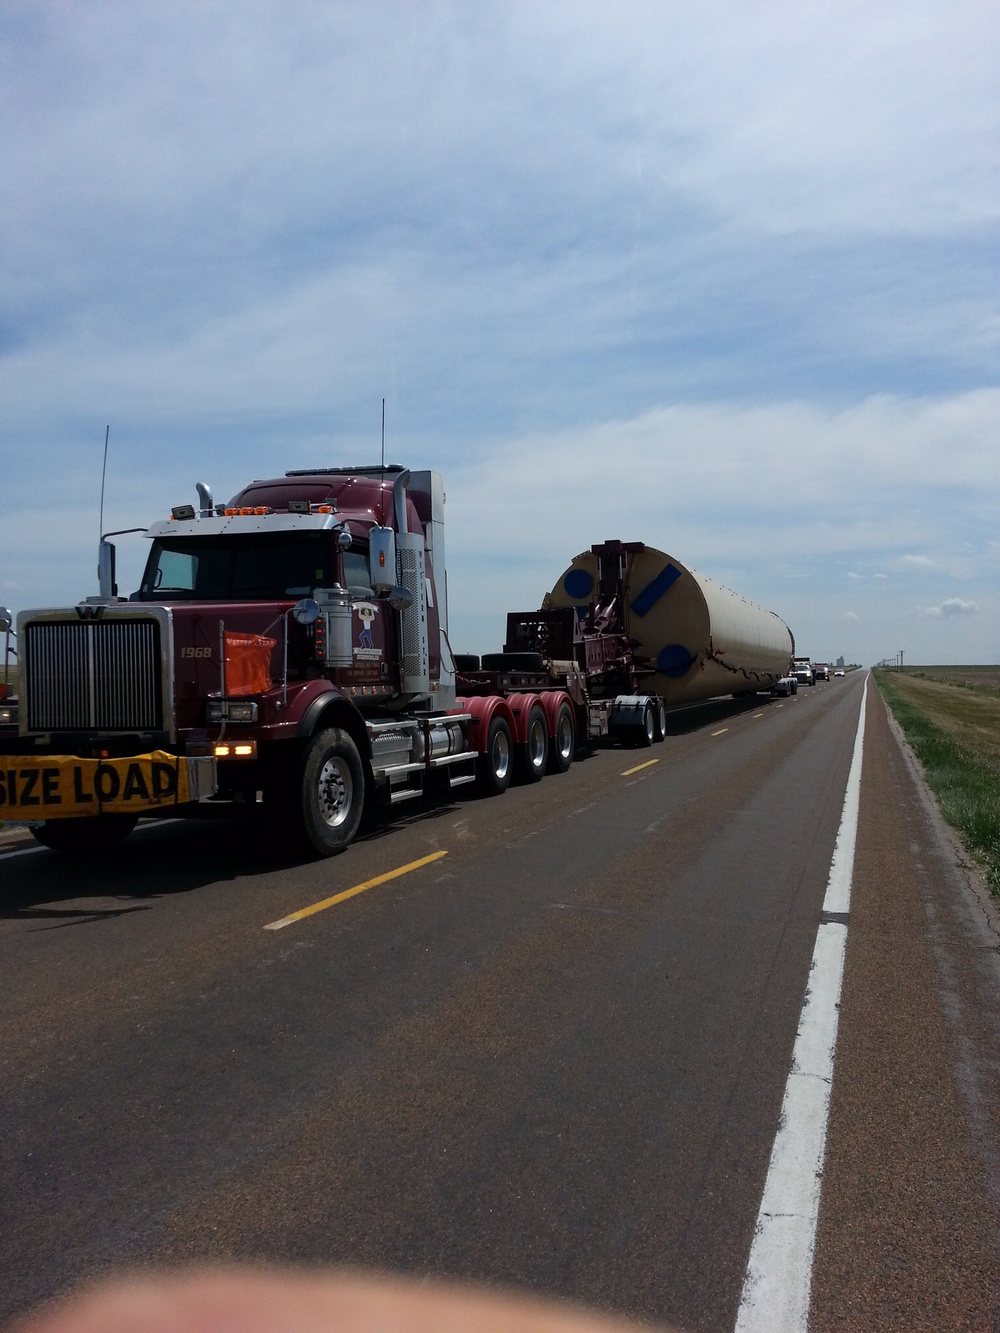 We passed many of these oversized loads going through Kansas.  I think they were building Megatron.